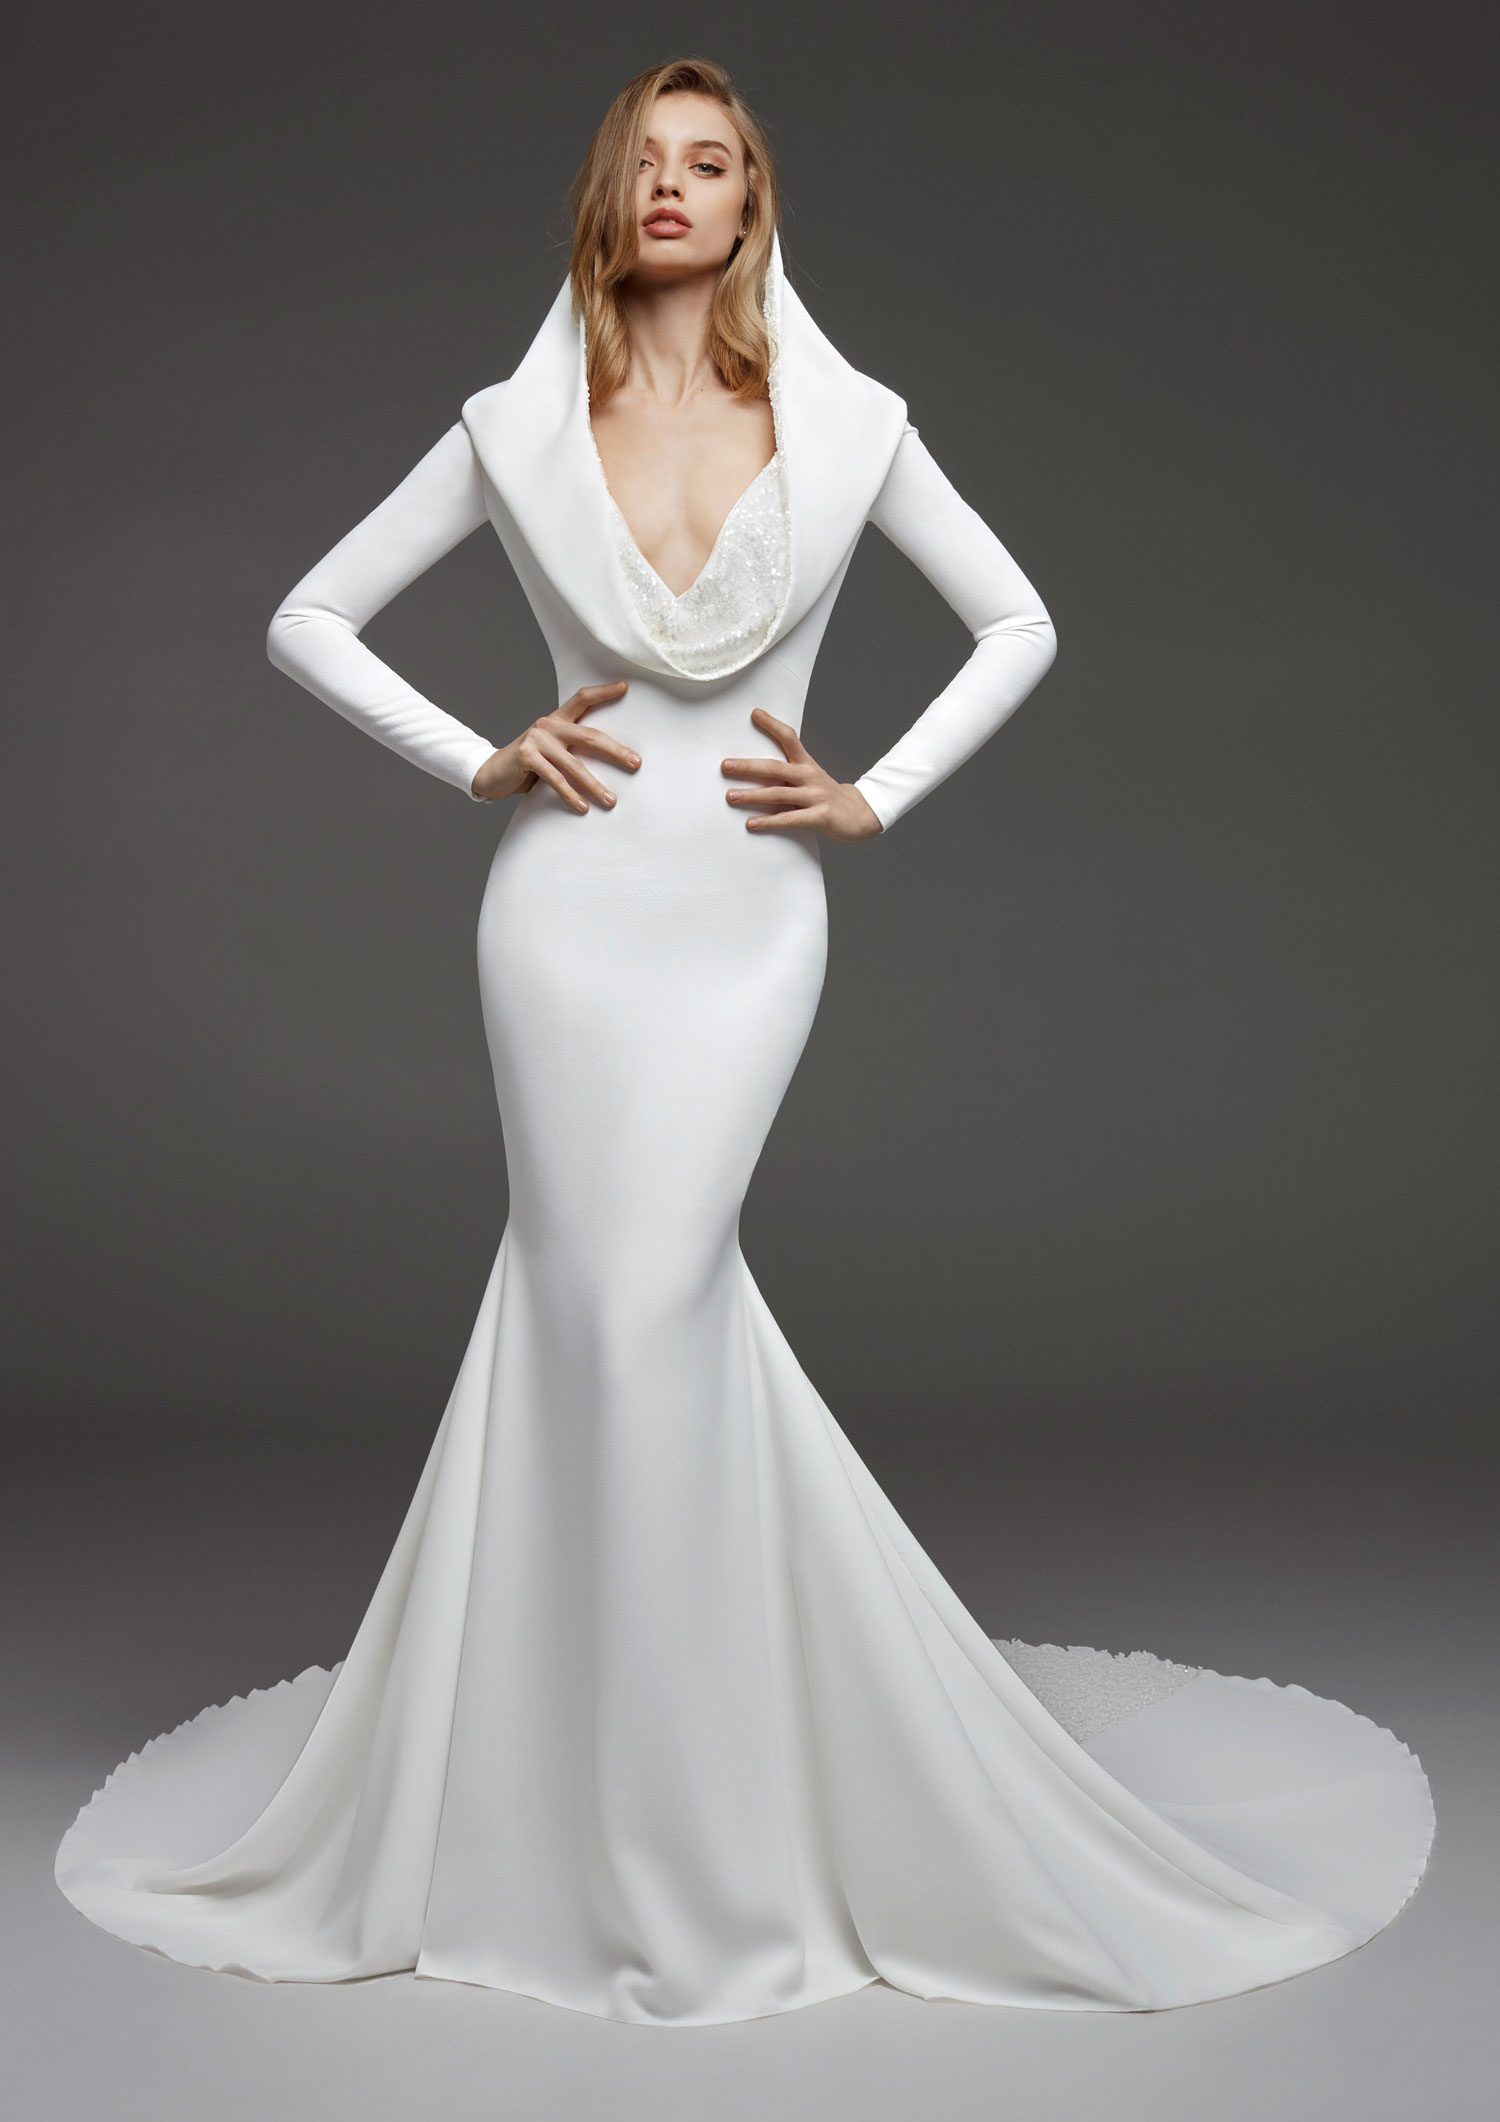 Halloween-inspired wedding dress with hood atelier pronovias fall 2019